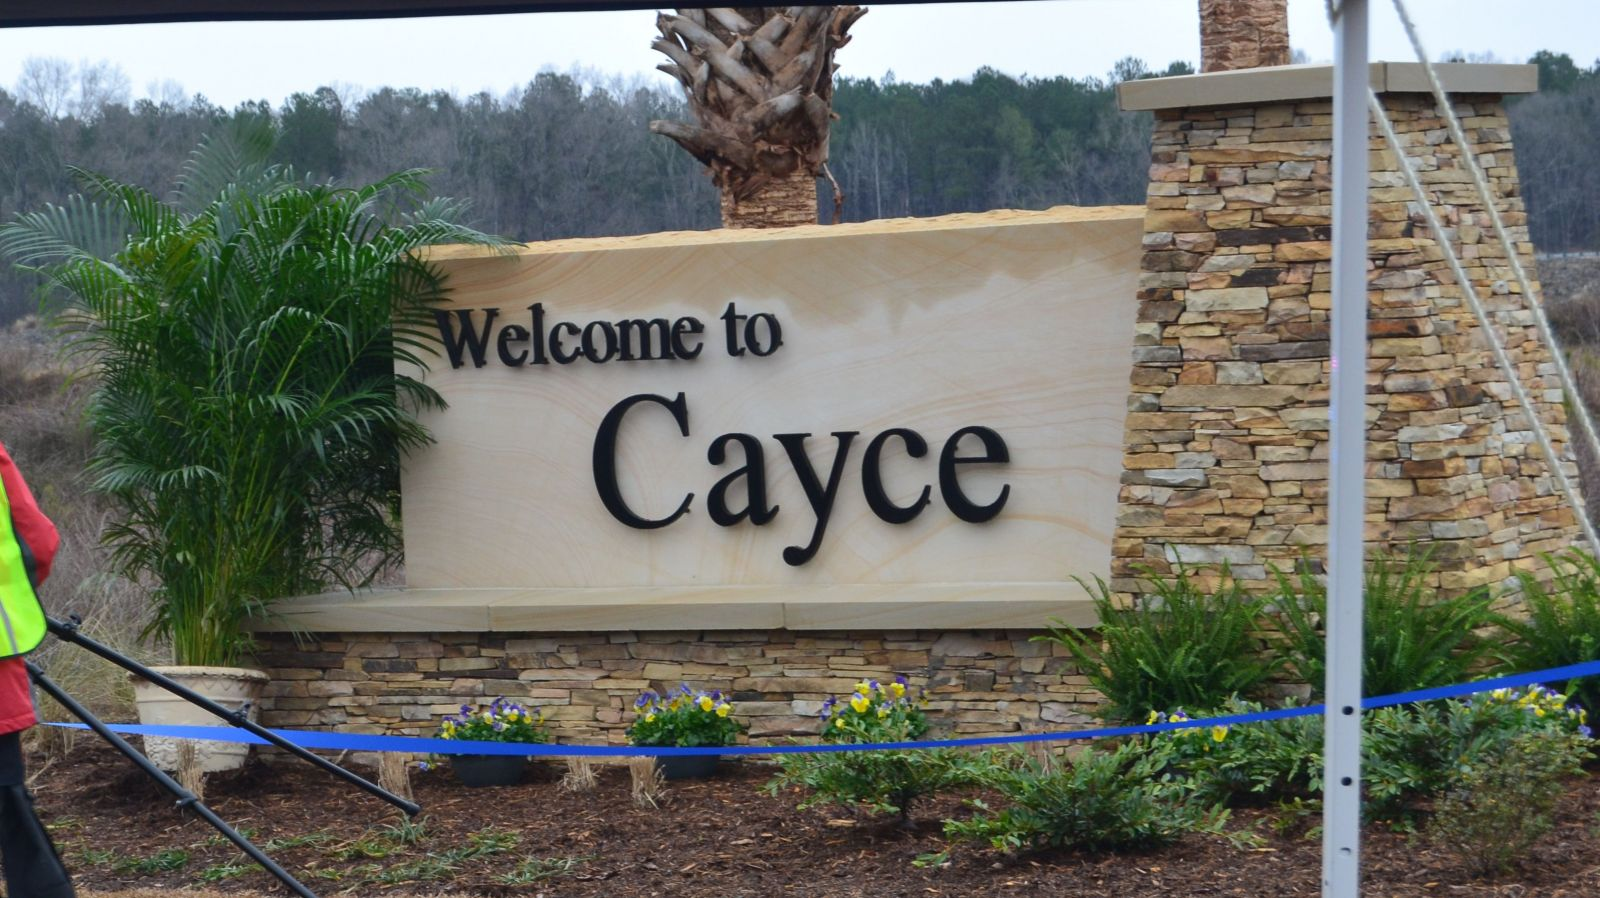 SCANA Corporation and City of Cayce dedicated its new welcome sign Friday. (Photo/Travis Boland)